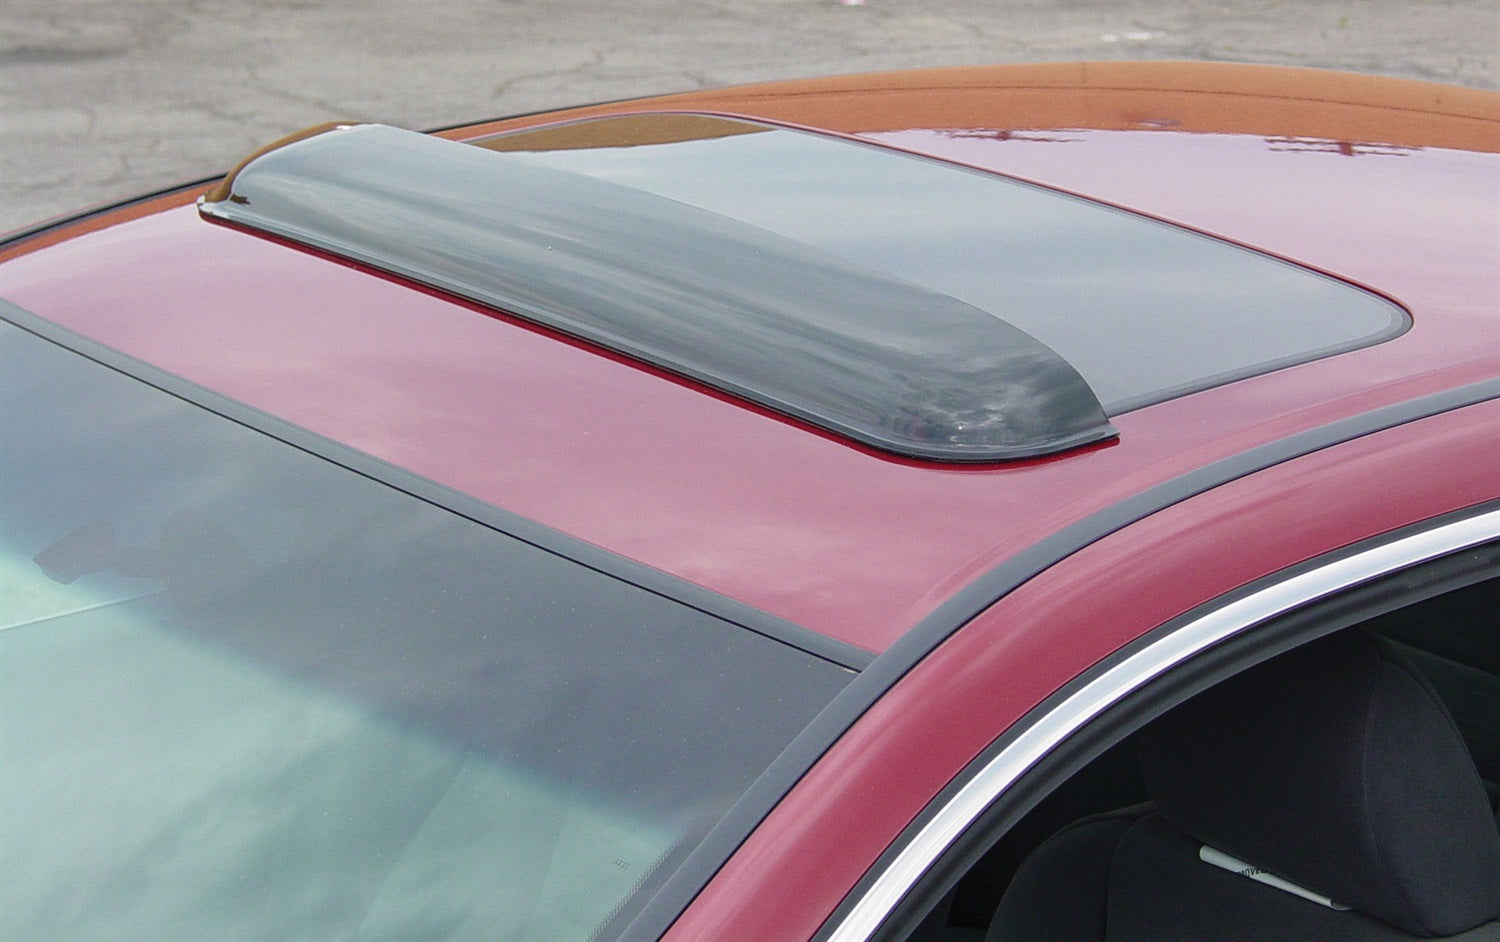 1996 Nissan 300ZX Sunroof Wind Deflector